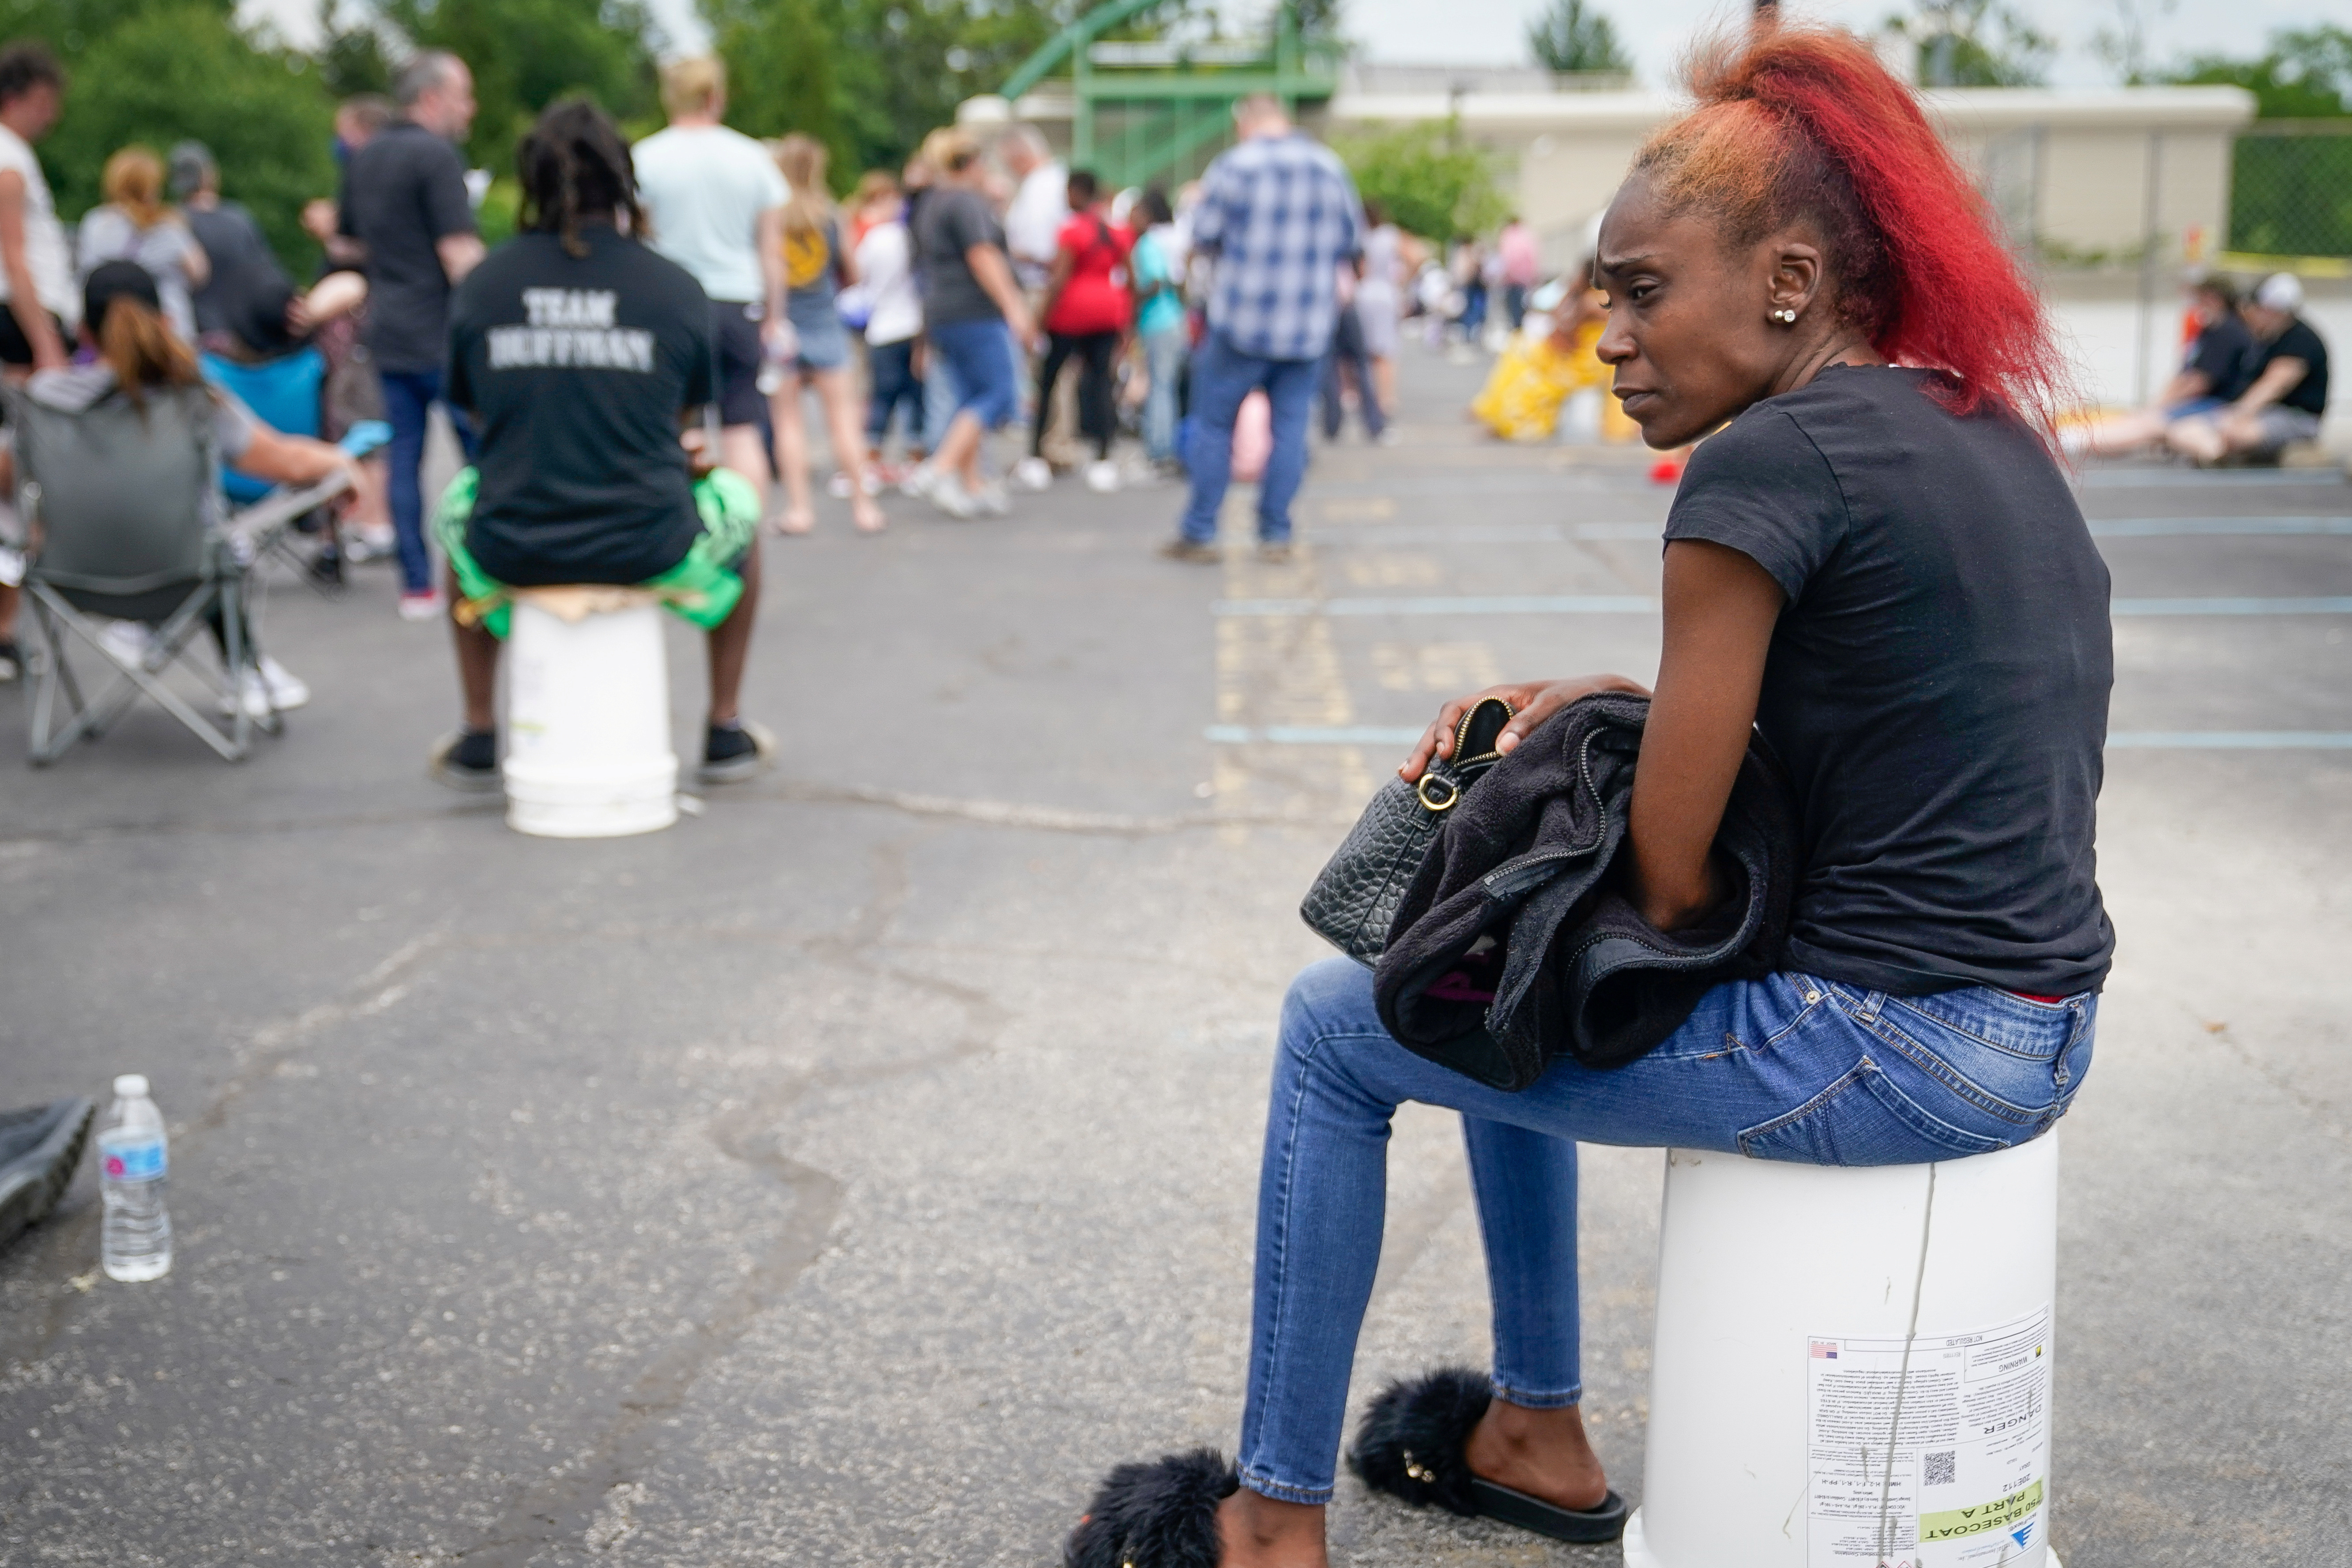 Tin Reeves sits as she waits in a line outside a temporary unemployment office established by the Kentucky Labor Cabinet at the State Capitol Annex in Frankfort, Kentucky, U.S. June 17, 2020. REUTERS/Bryan Woolston - RC27BH9G71LZ